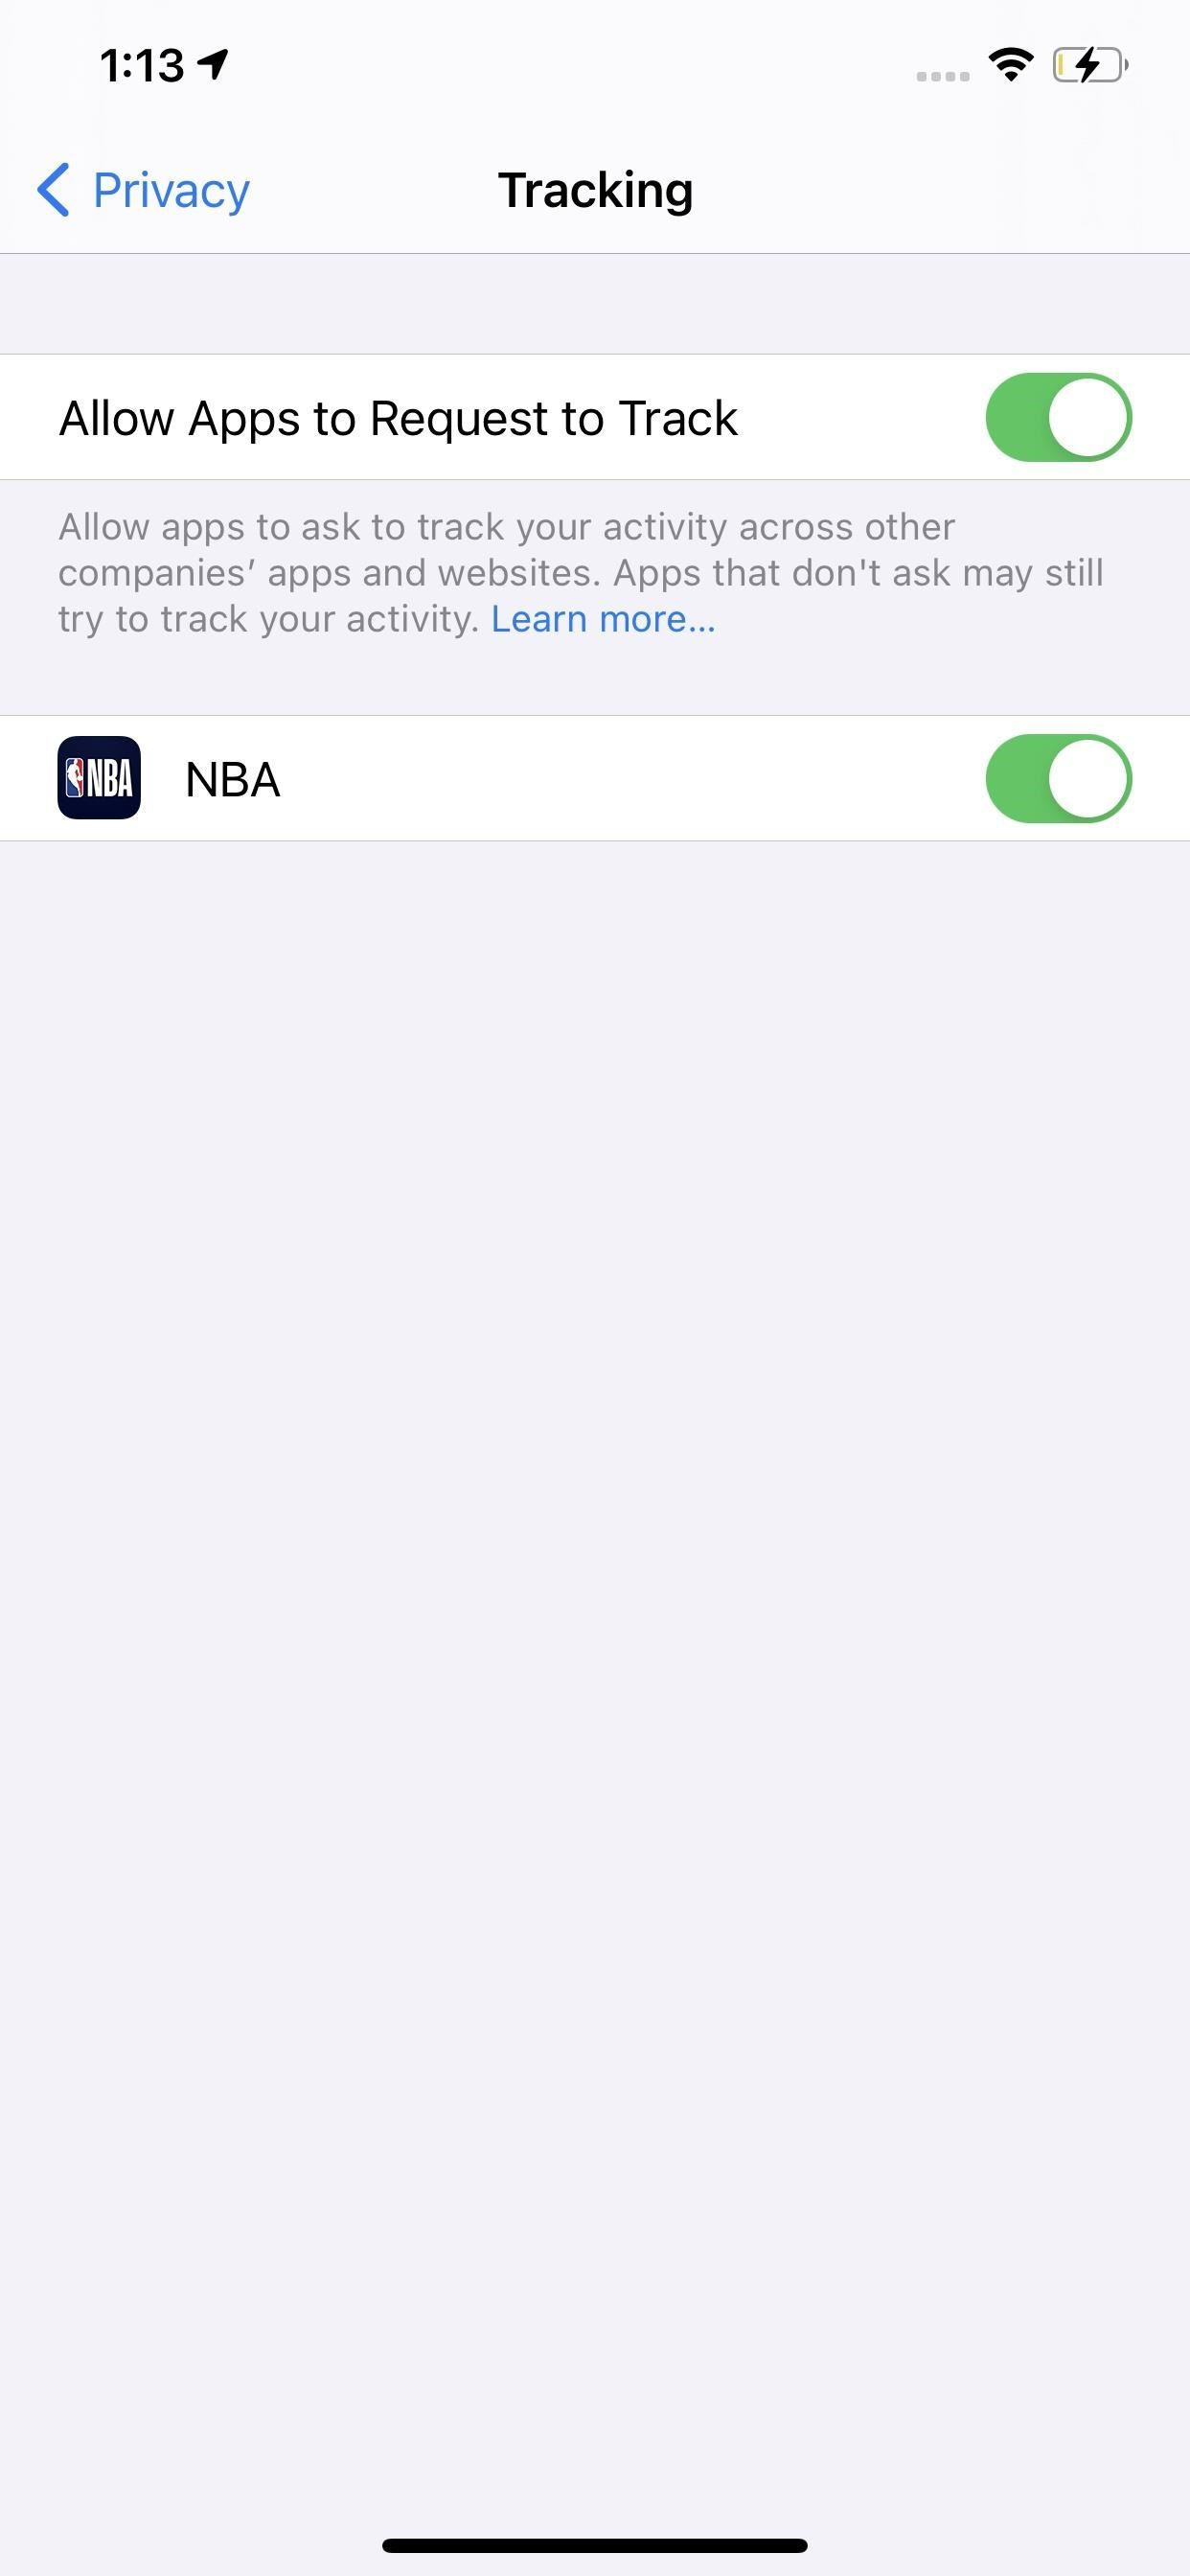 iOS 14.4 Public Beta Available for iPhone with More App Clip Experiences, Tracking Requests & New Modem Firmware